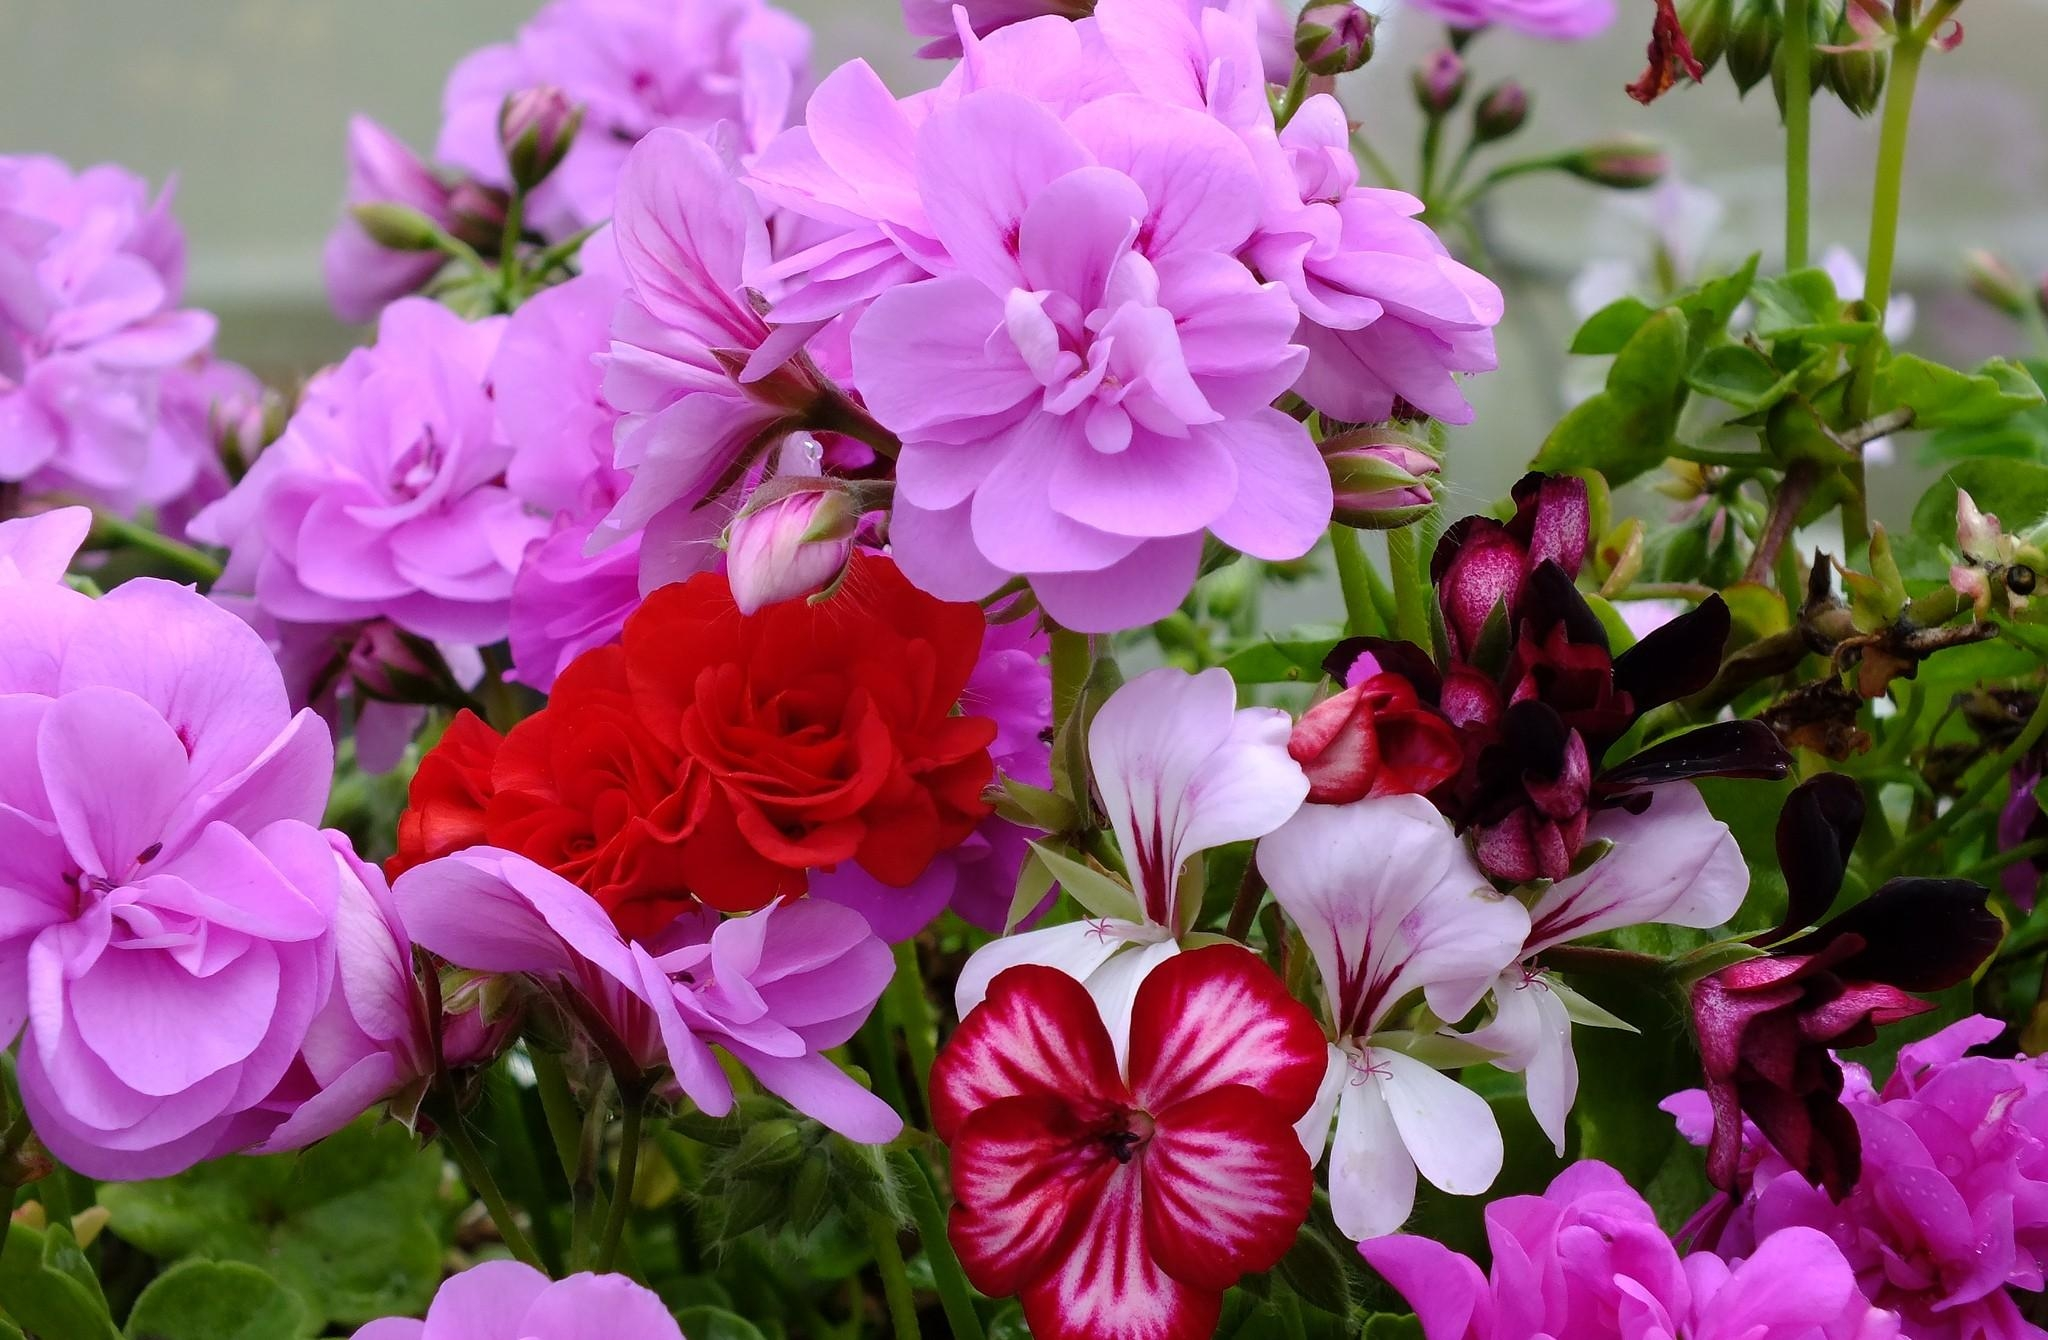 138985 download wallpaper Flowers, Geranium, Bloom, Flowering, Bright, Close-Up screensavers and pictures for free